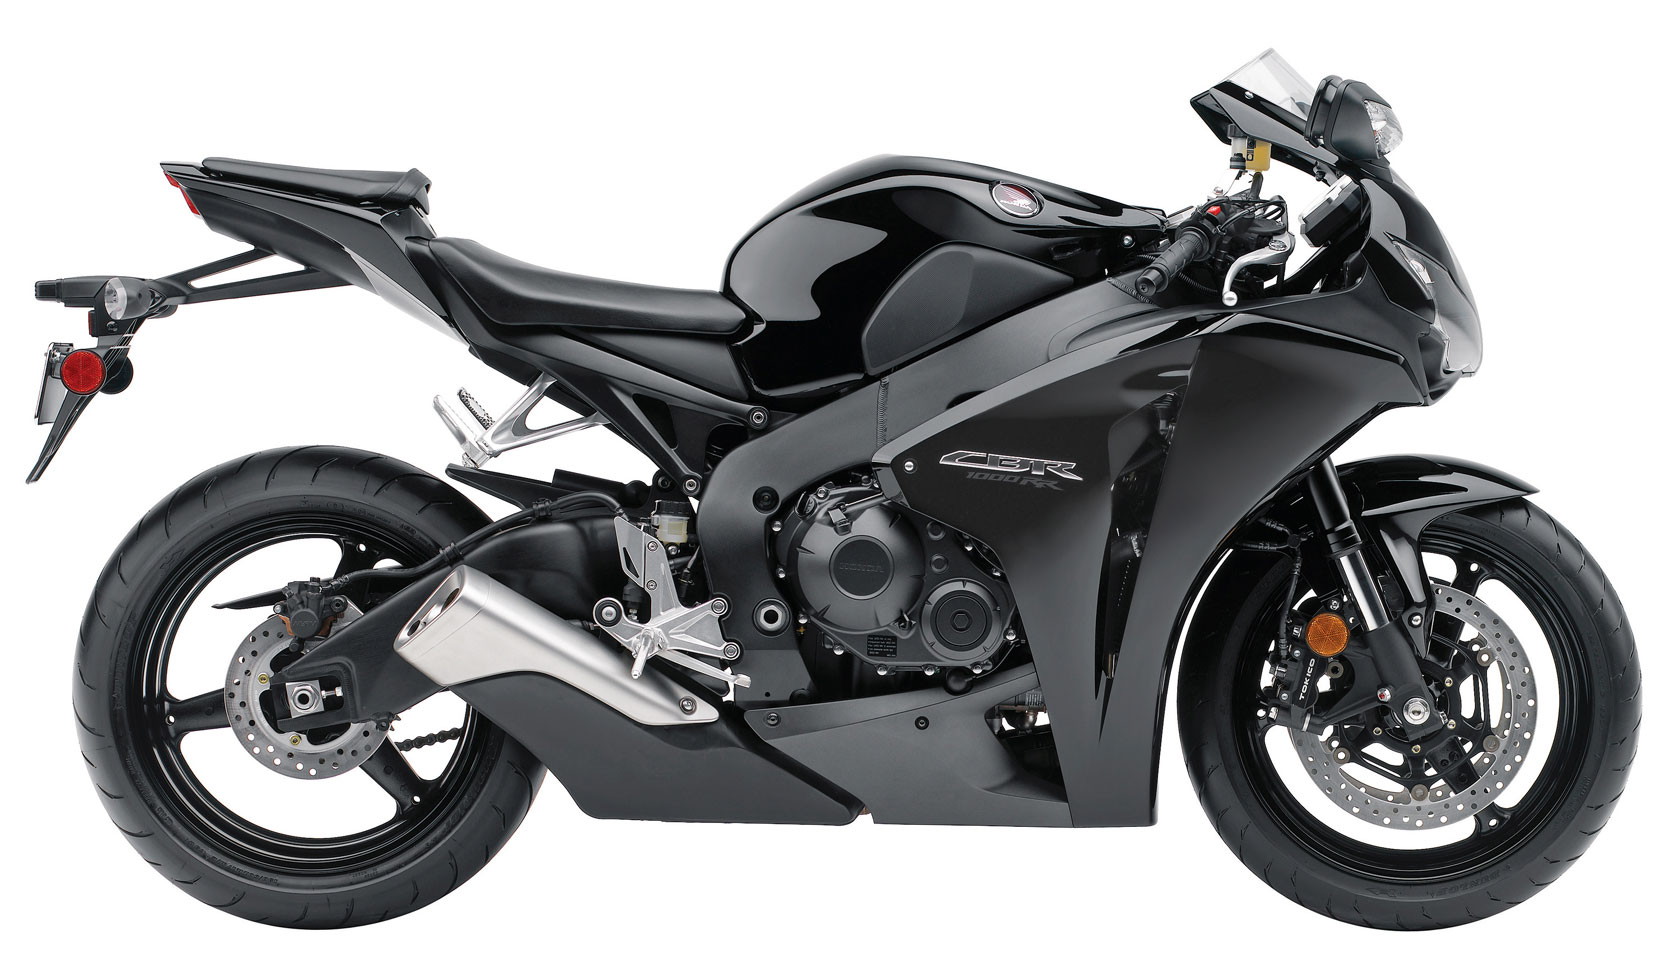 2009 Black Honda CBR1000RR ABS Motorcycle Picture